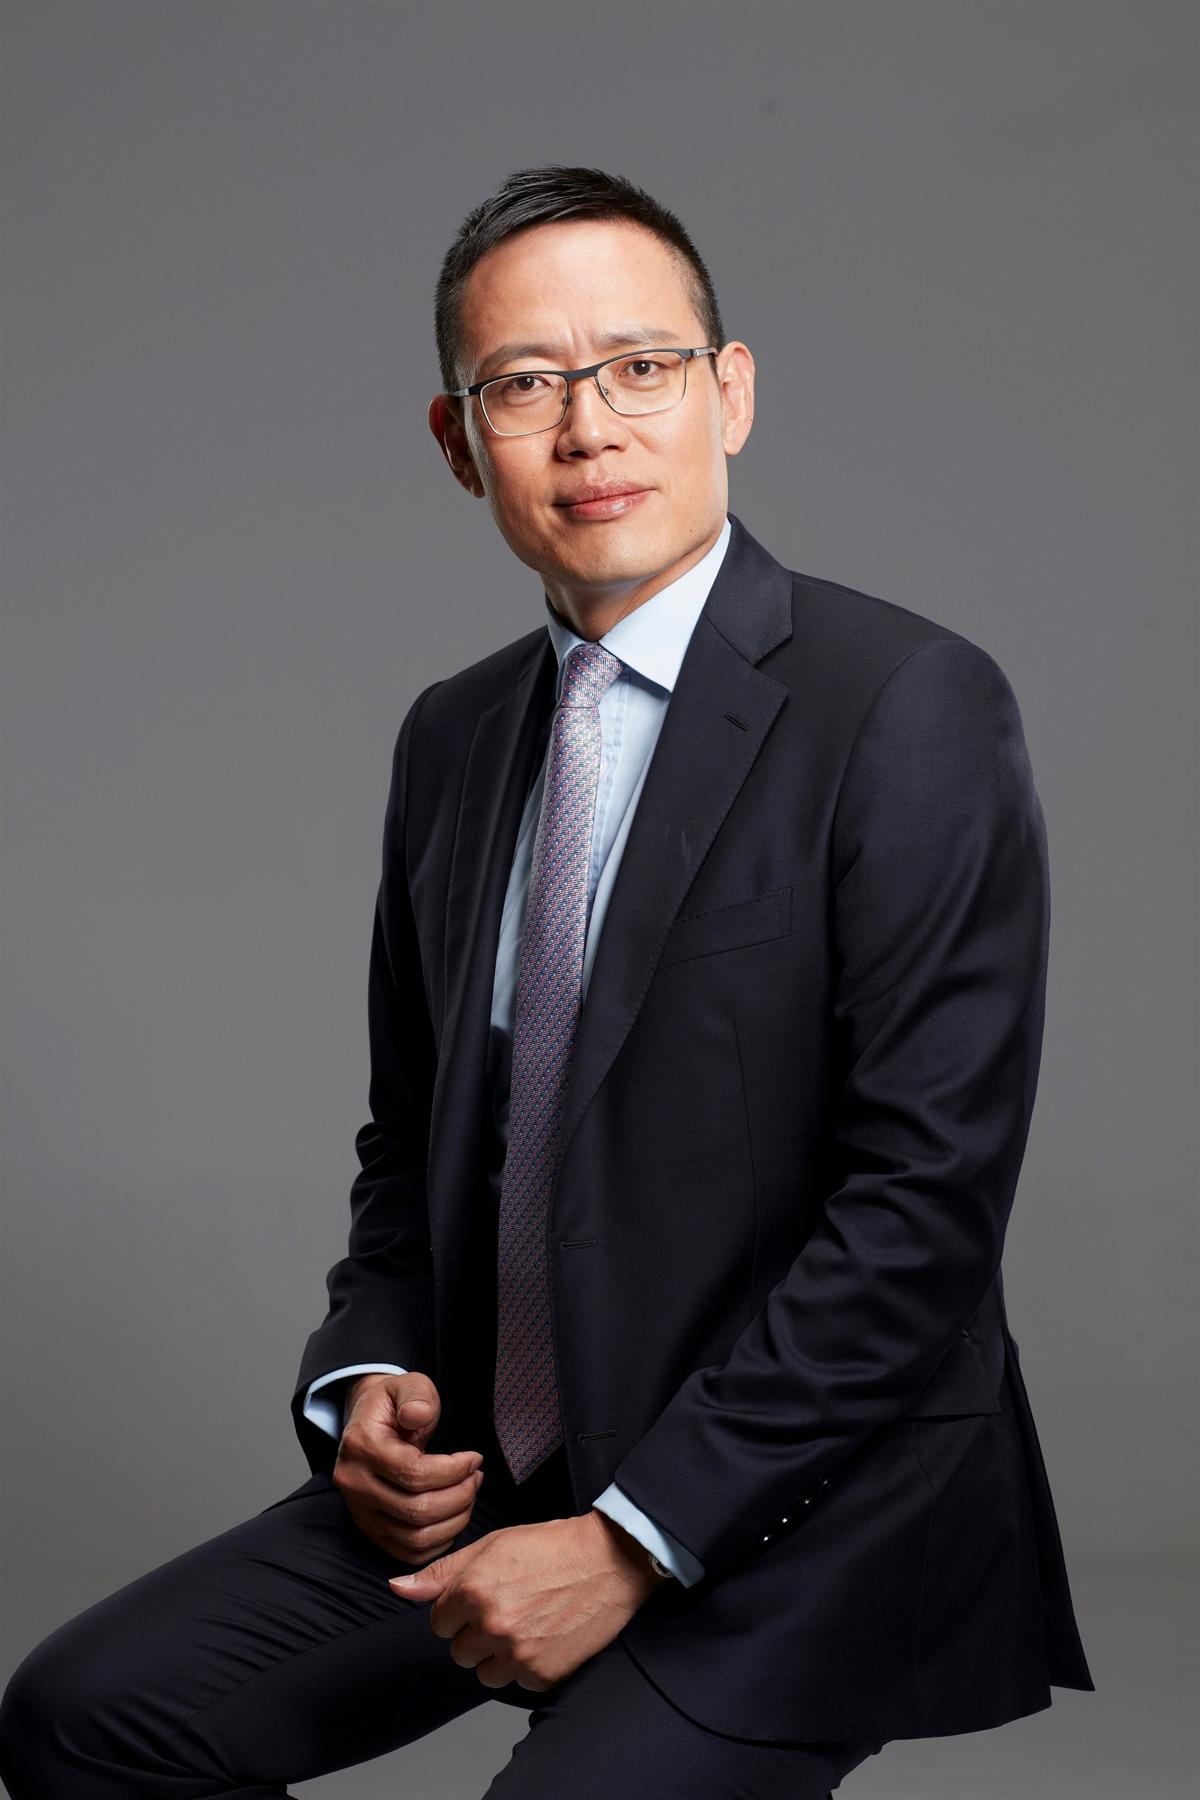 K1600 202907 Xiaolin Yuan Senior Vice President Asia Pacific region as of March 1 2017